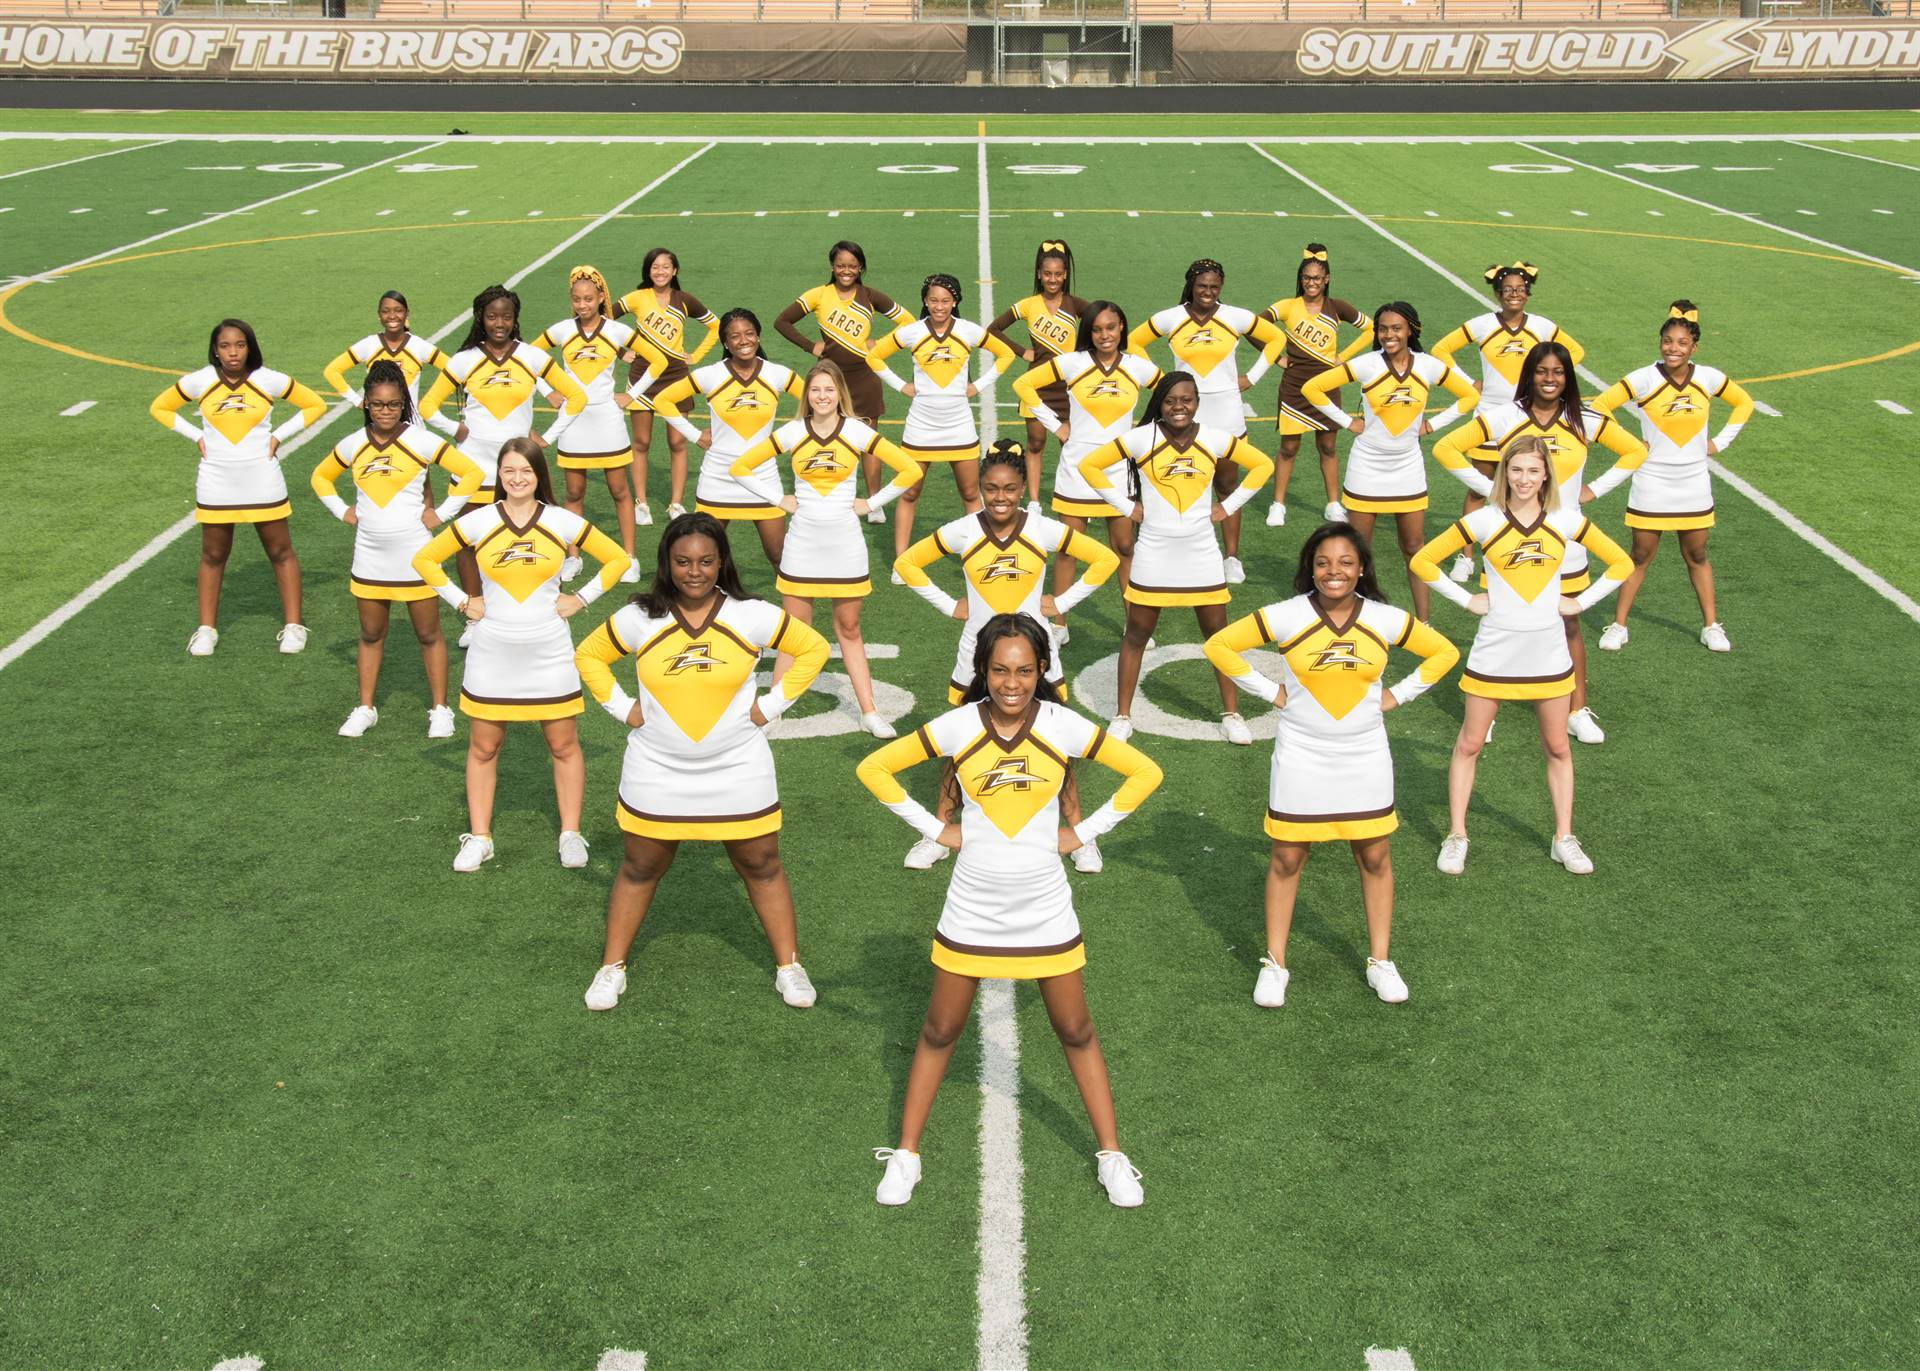 Cheerleading Regarding South Euclid Lyndhurst Calendar